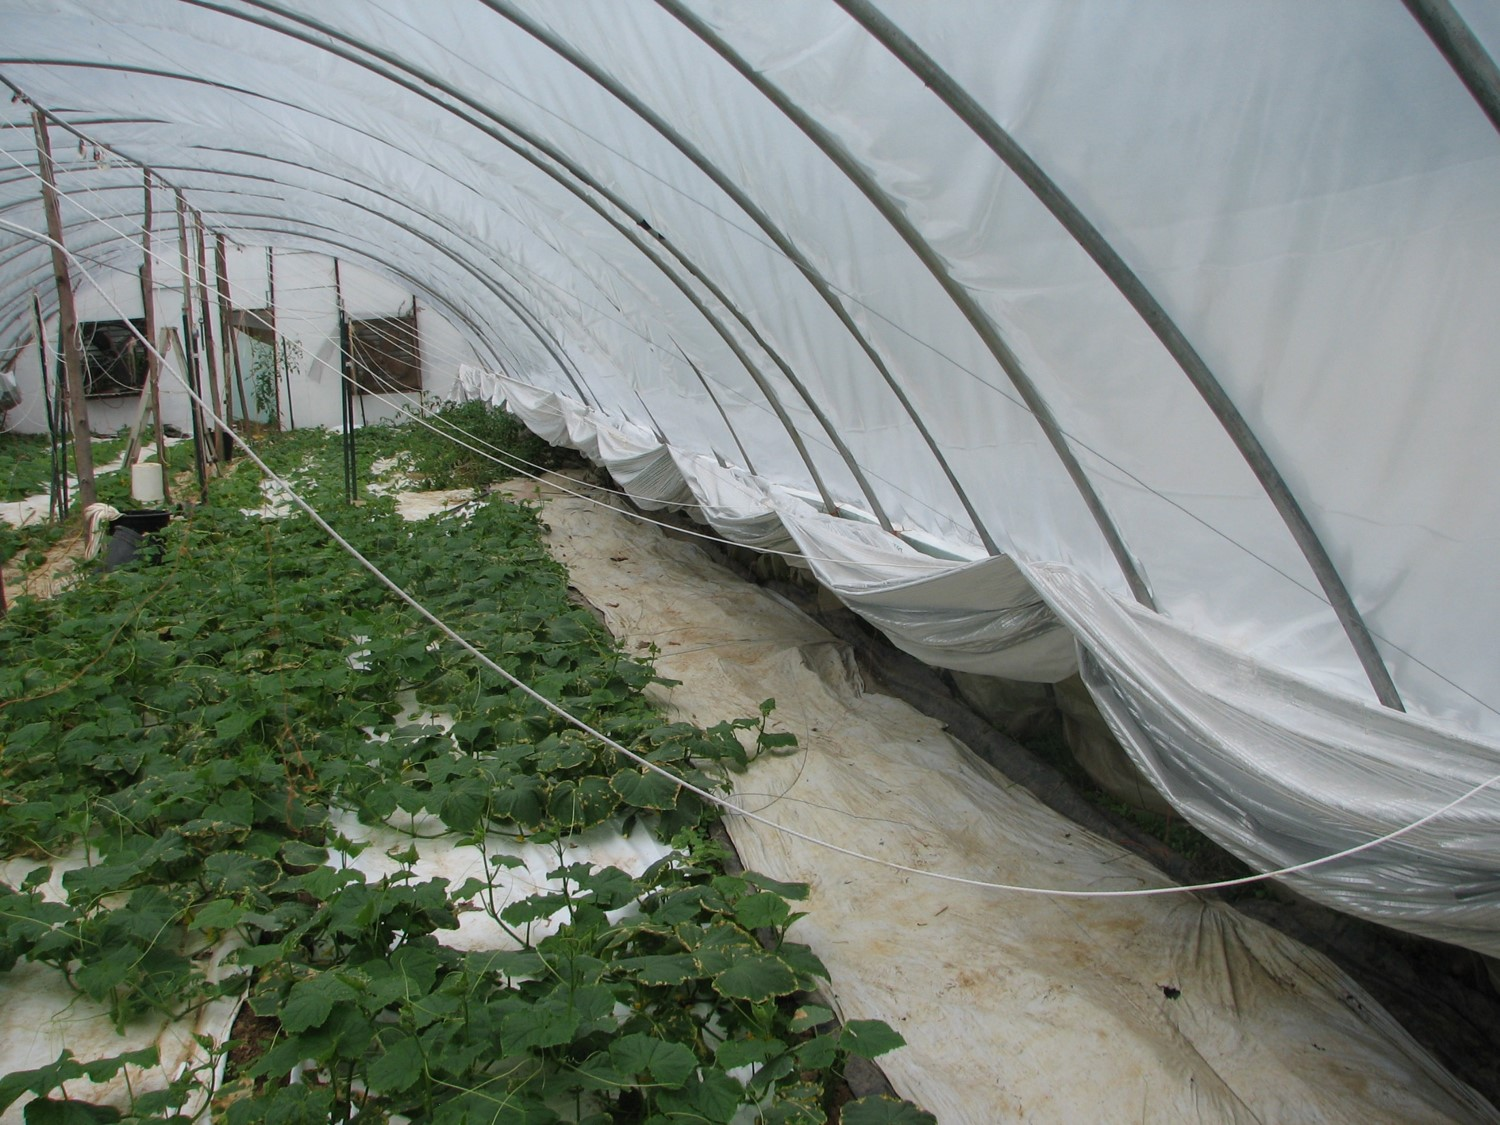 Shade curtains allow greenhouse operators to control how much sun and how much shade their plants are getting during the day.